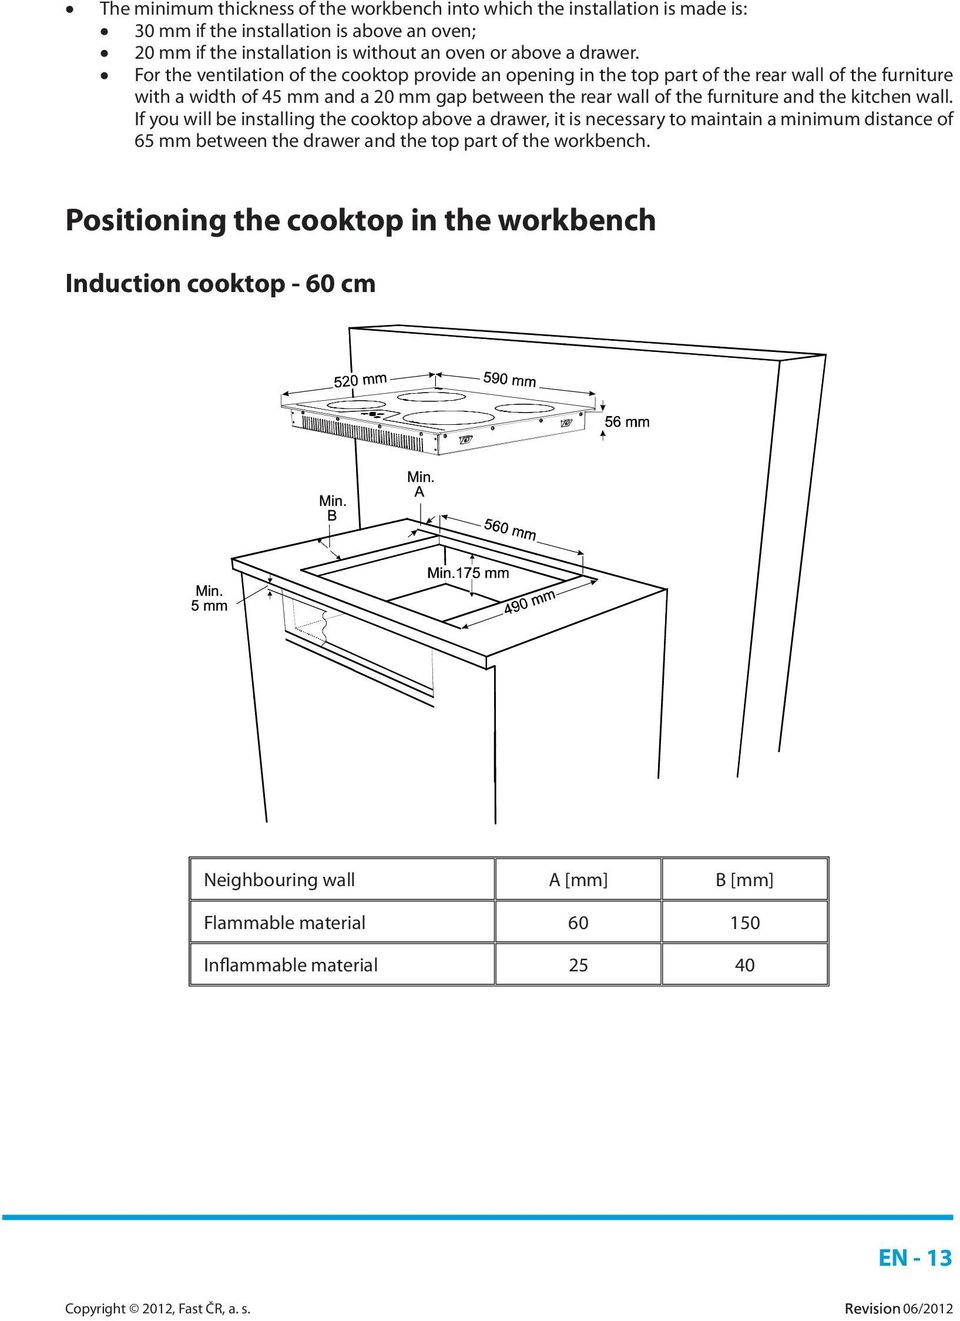 For the ventilation of the cooktop provide an opening in the top part of the rear wall of the furniture with a width of 45 mm and a 20 mm gap between the rear wall of the